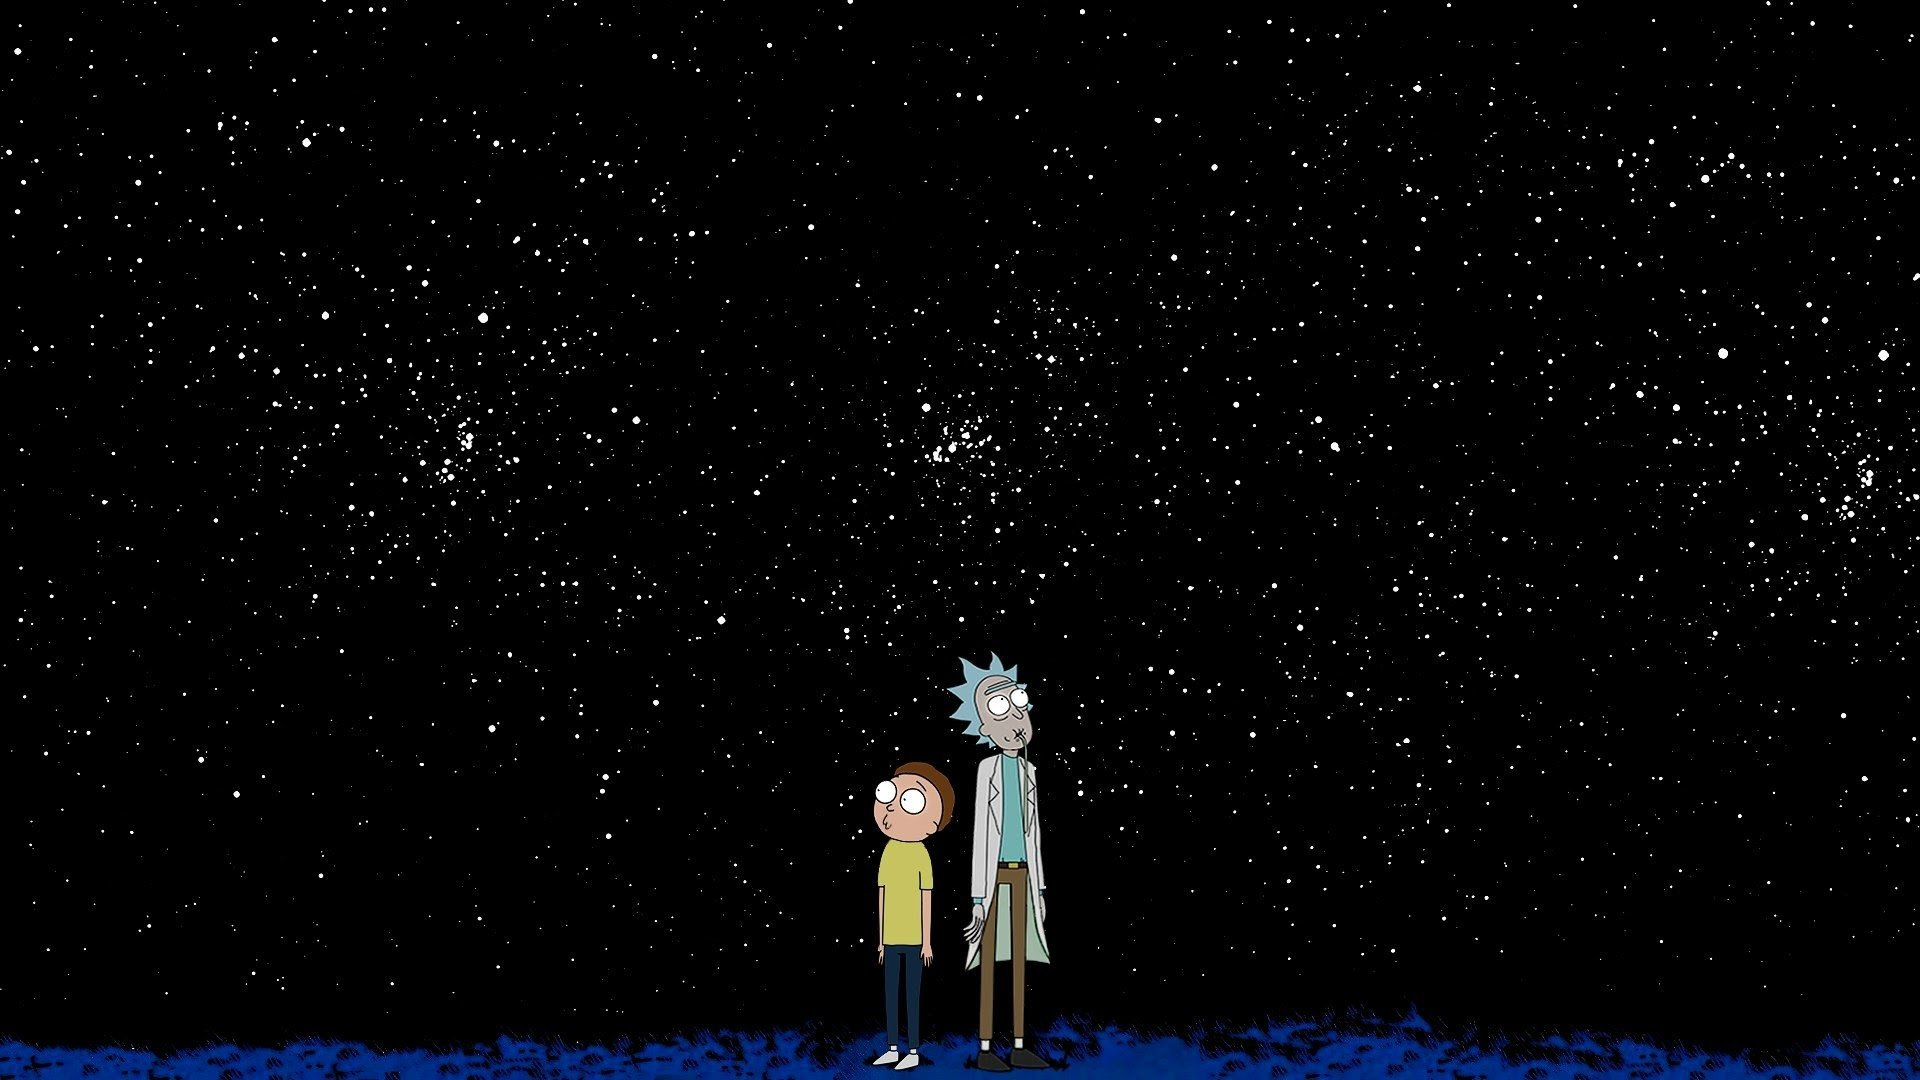 246 Rick and Morty HD Wallpapers   Background Images   Wallpaper Abyss HD Wallpaper   Background Image ID 876589  1920x1080 TV Show Rick and Morty